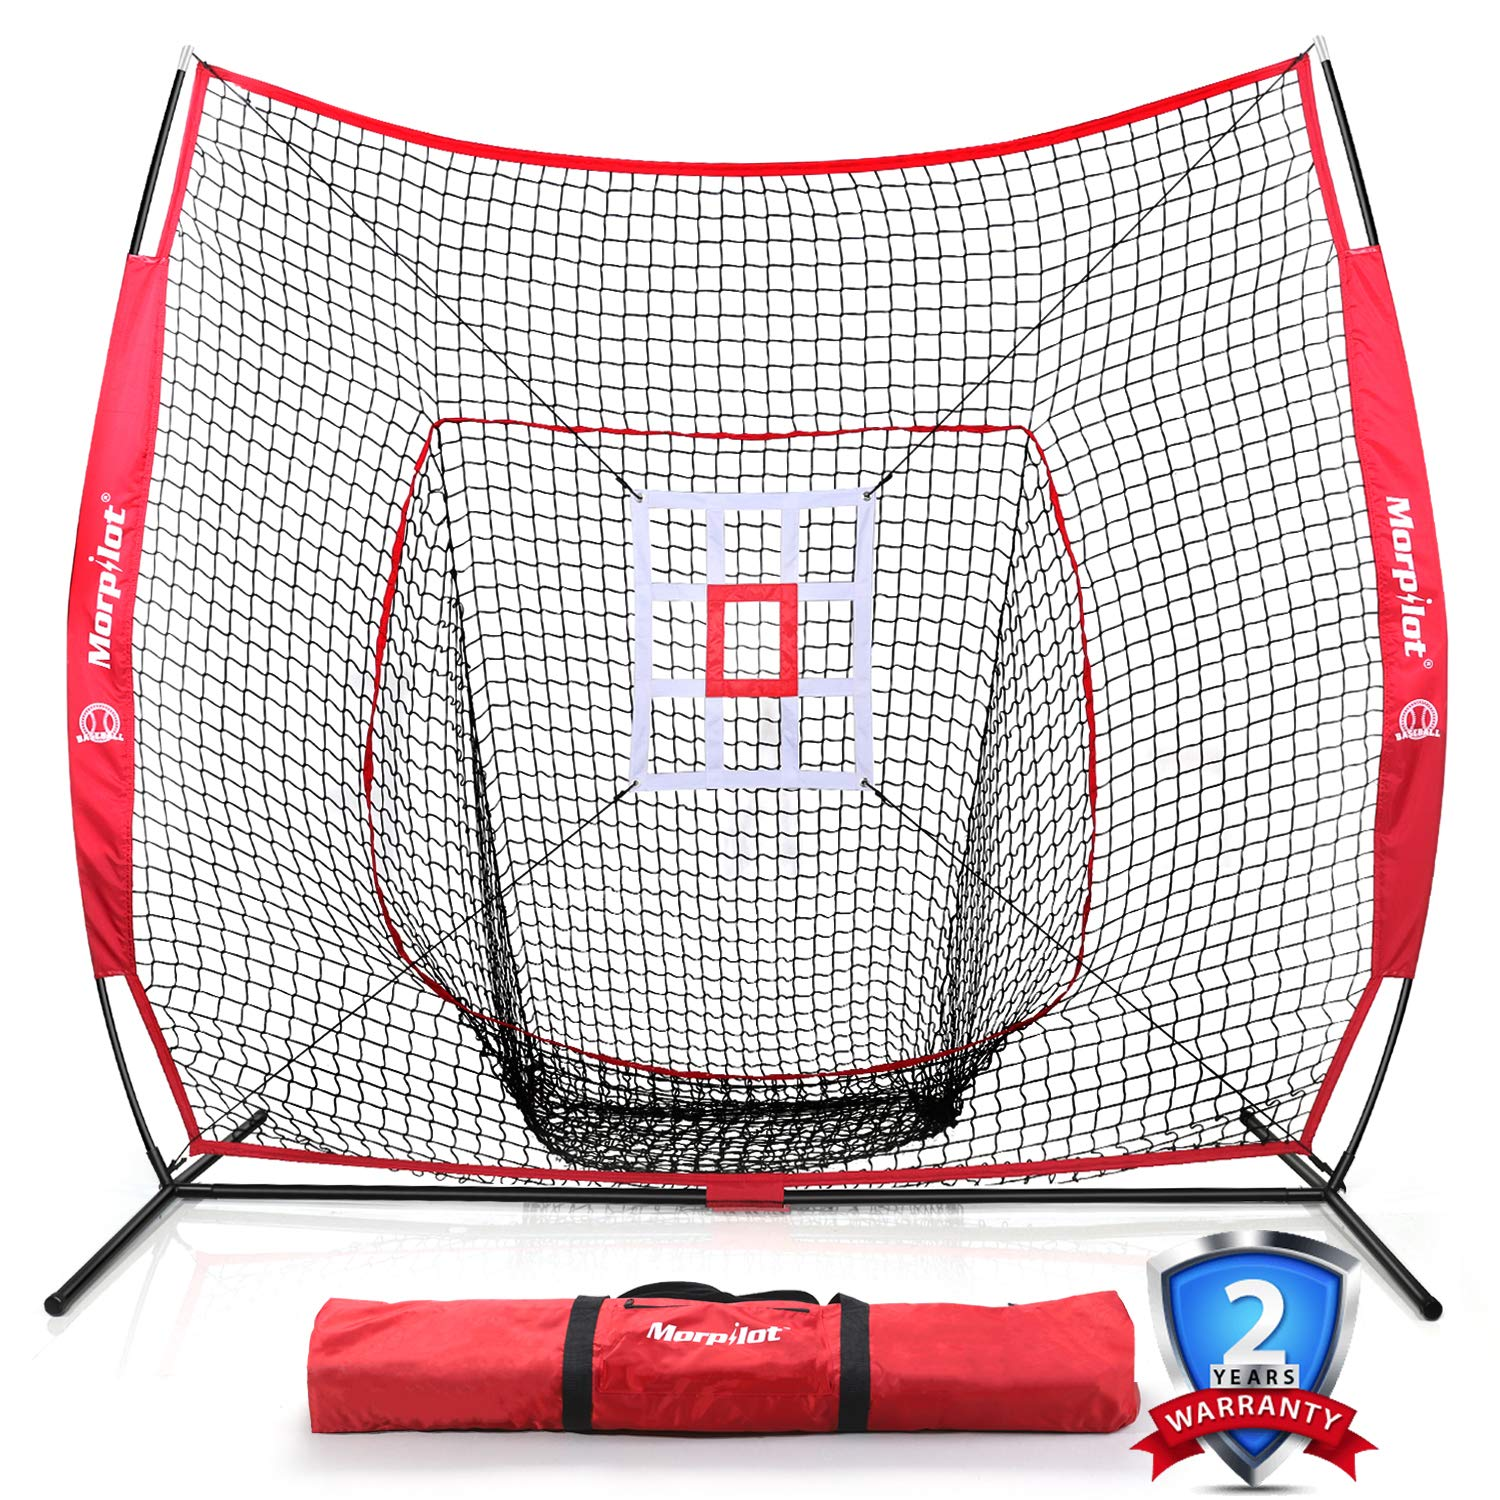 Keenstone 7' X 7' Baseball & Softball Practice Hitting & Pitching Net with Bow Frame, Carry Bag and Bonus Strike Zone, Great for All Skill Levels | Collapsible and Portable